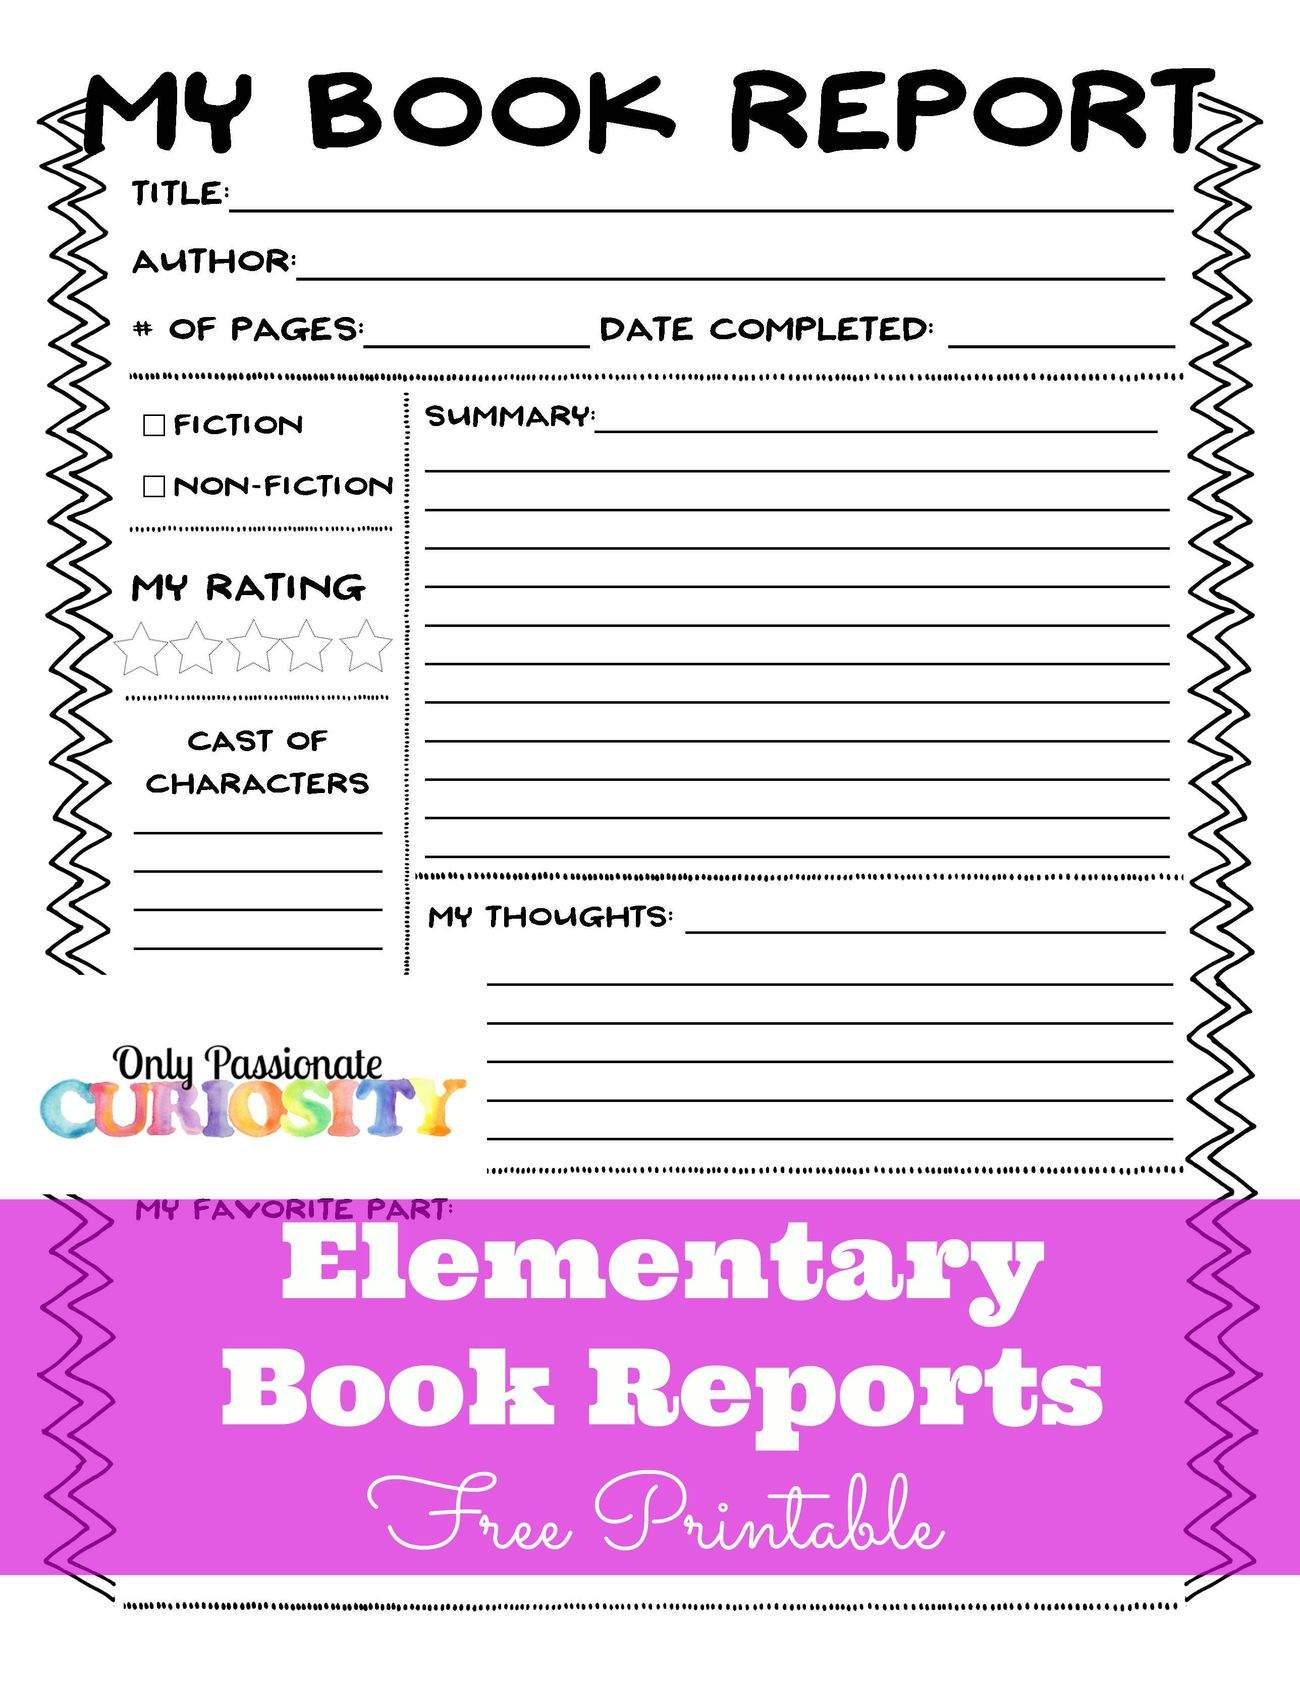 do book report Download free 30 book report templates & reading worksheets useful tips and book report ideas waiting for you :.